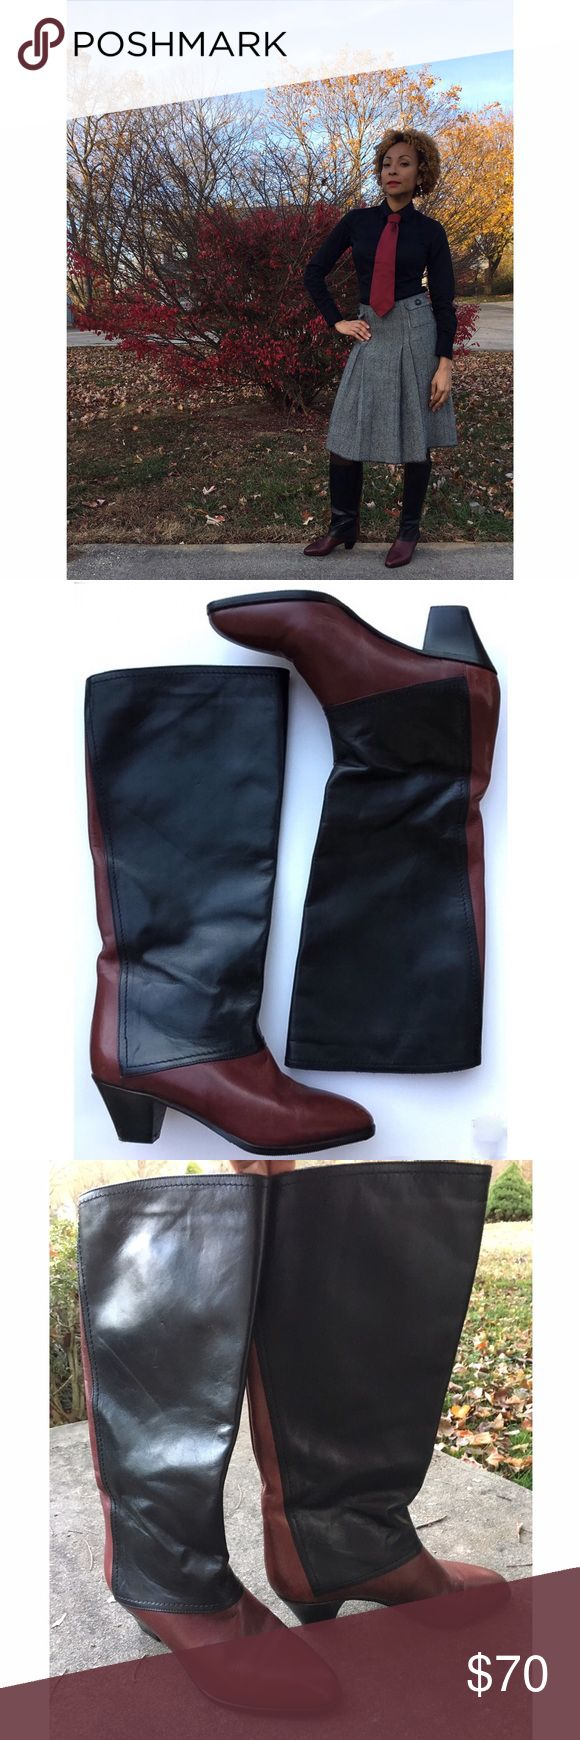 """Italian Leather Colorblock Vintage Style Boots 6 Handcrafted in Italy, these beauties will stay with you for a lifetime. Soft buttery black and brown leather, almond toe, and 2"""" heel. Wear them with jeans, leggings, or skirts; so many options. My friend sent them to me from Italy, but they're a little tight on me, so if you're a true 6, or a 5.5, these are the boots for you! Almost new condition. Di Marzio Shoes Heeled Boots"""